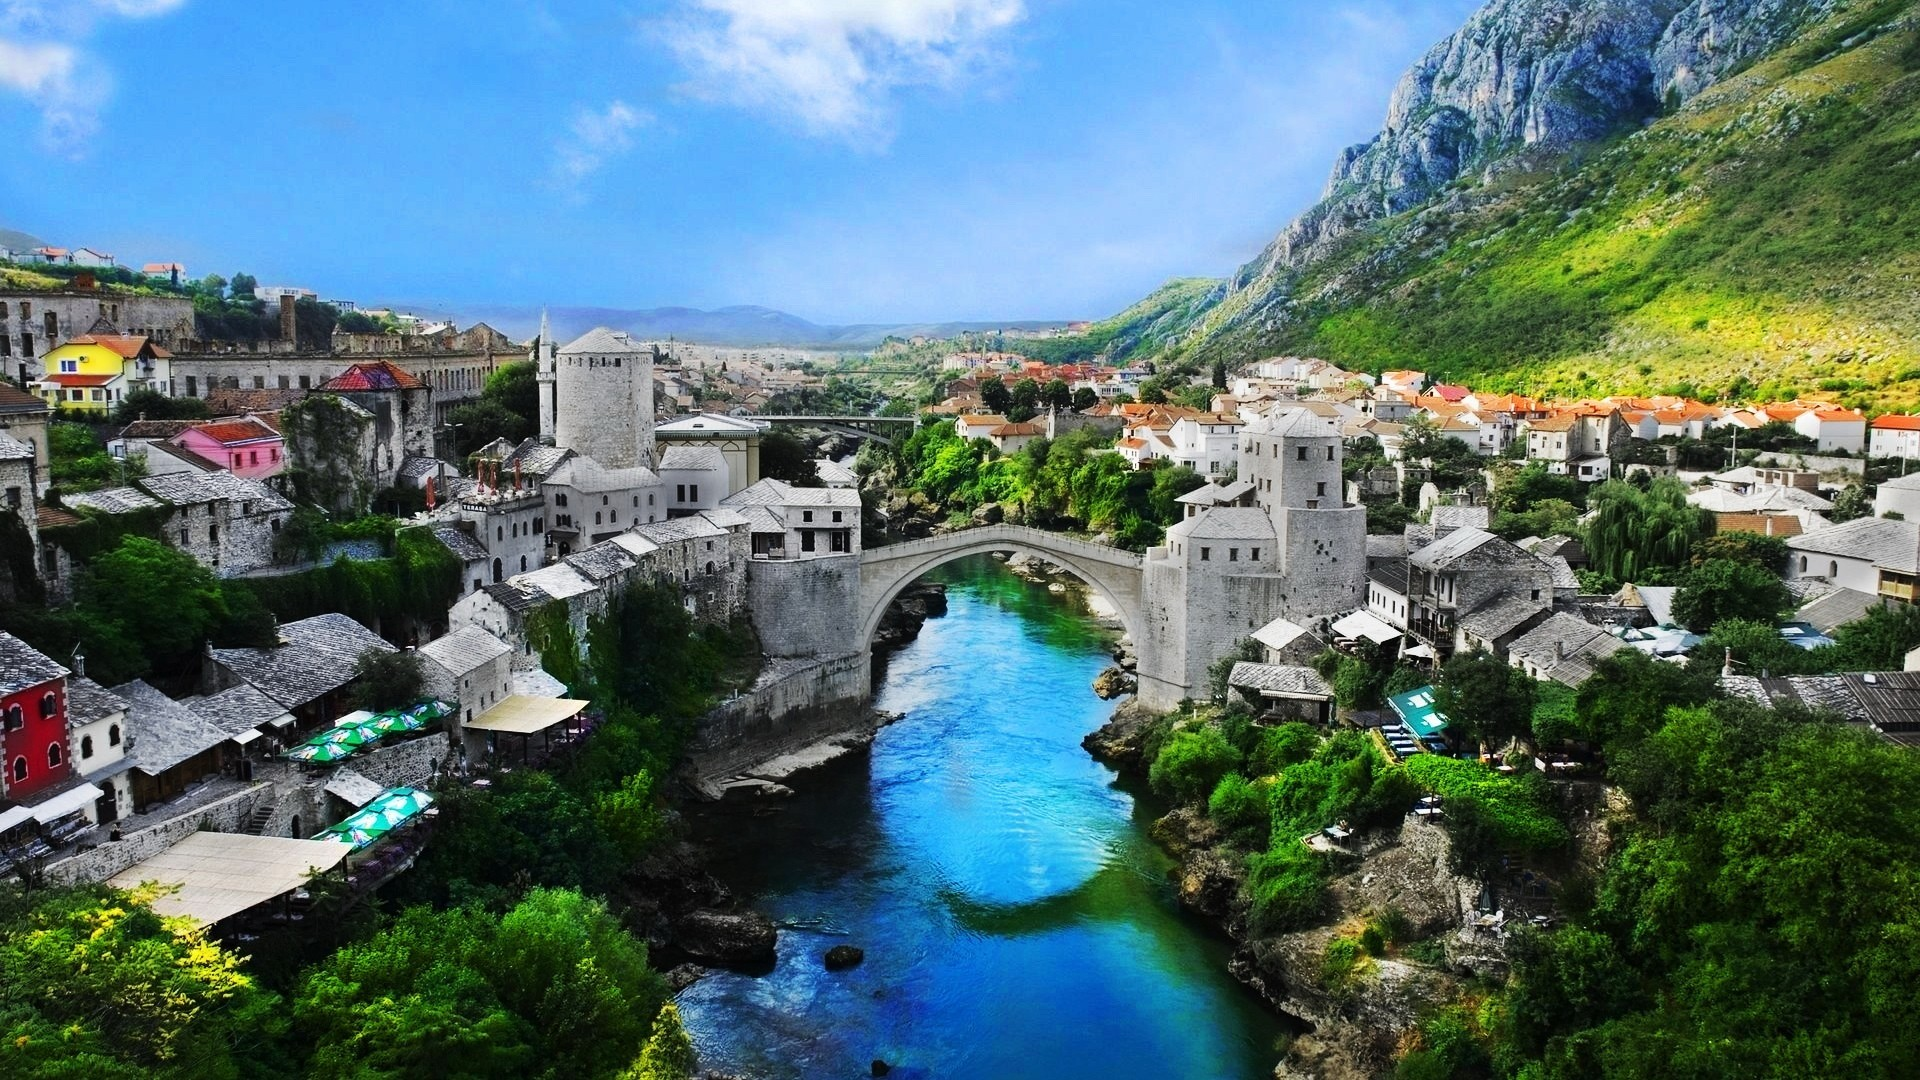 Preview wallpaper bosnia and herzegovina, mostar old town, mostar, nature,  landscape 1920×1080